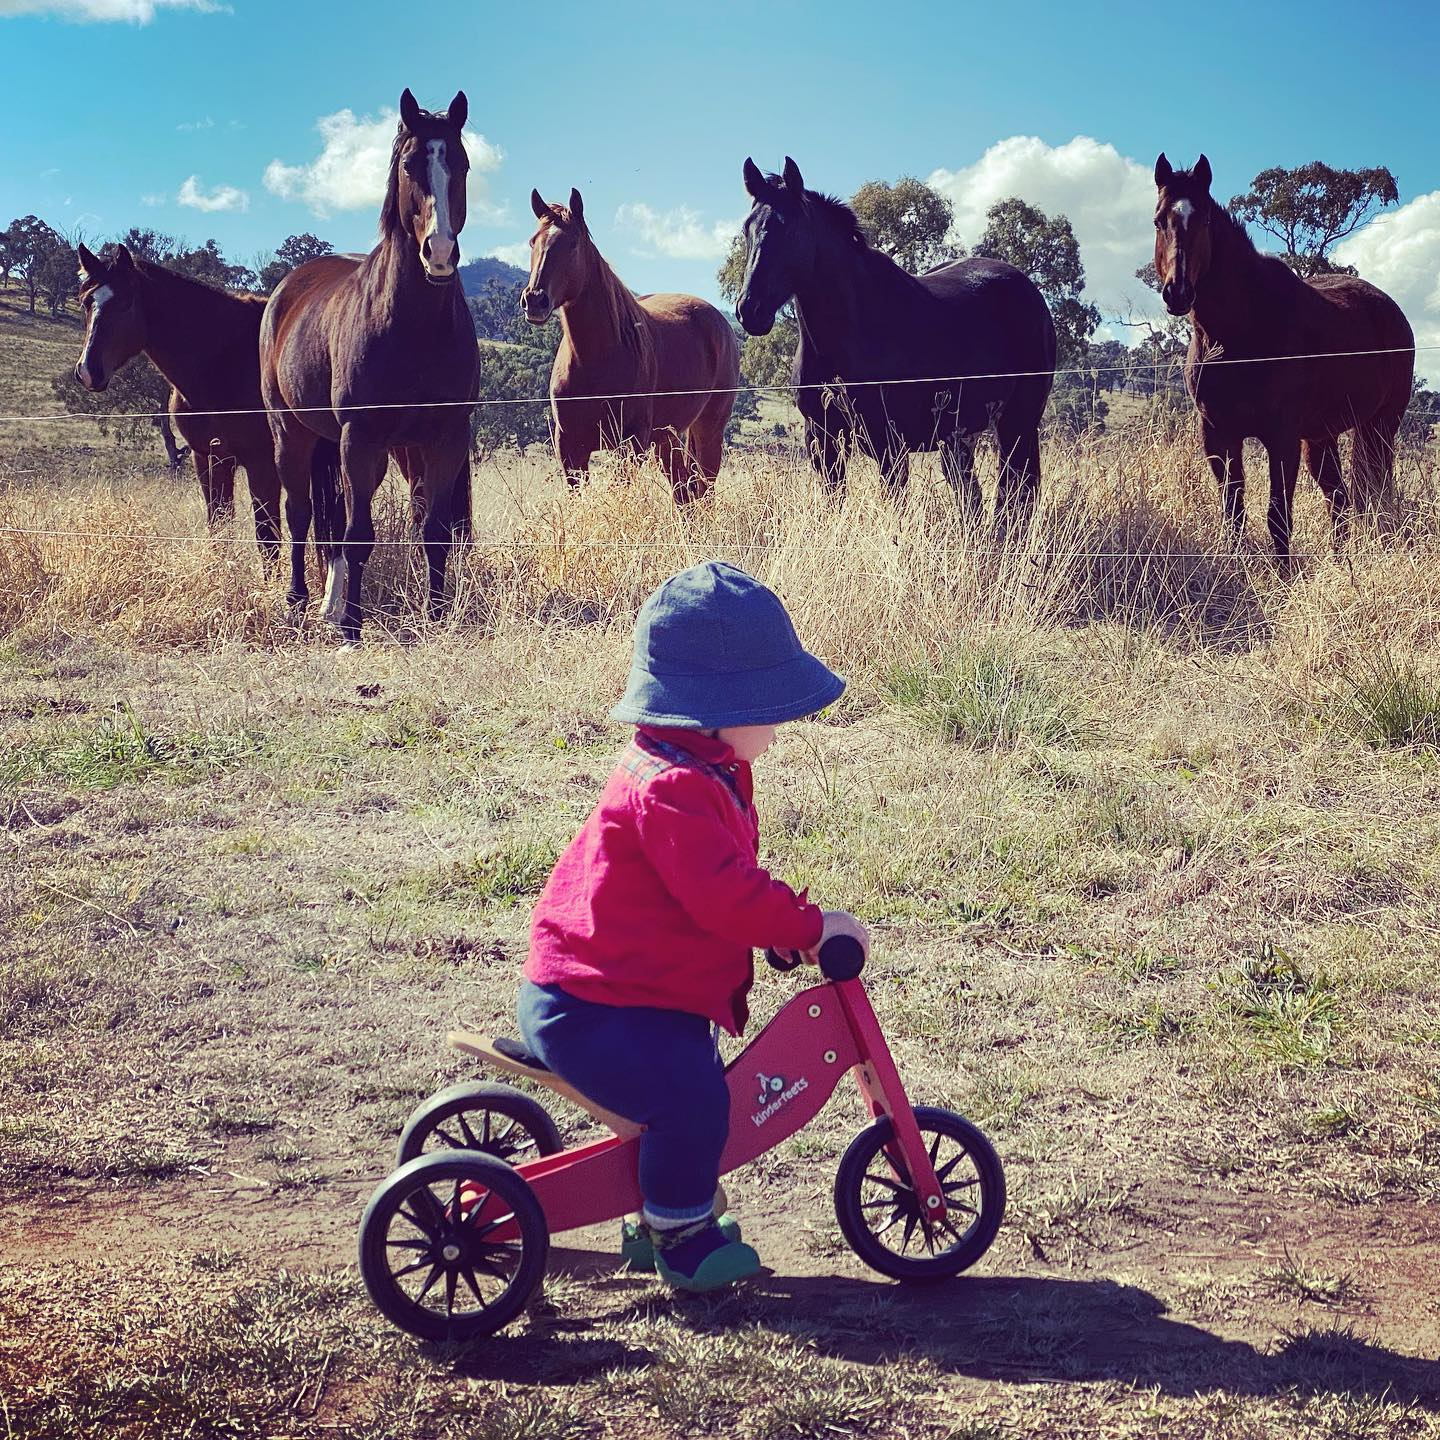 toddler riding trike as group of horses watch